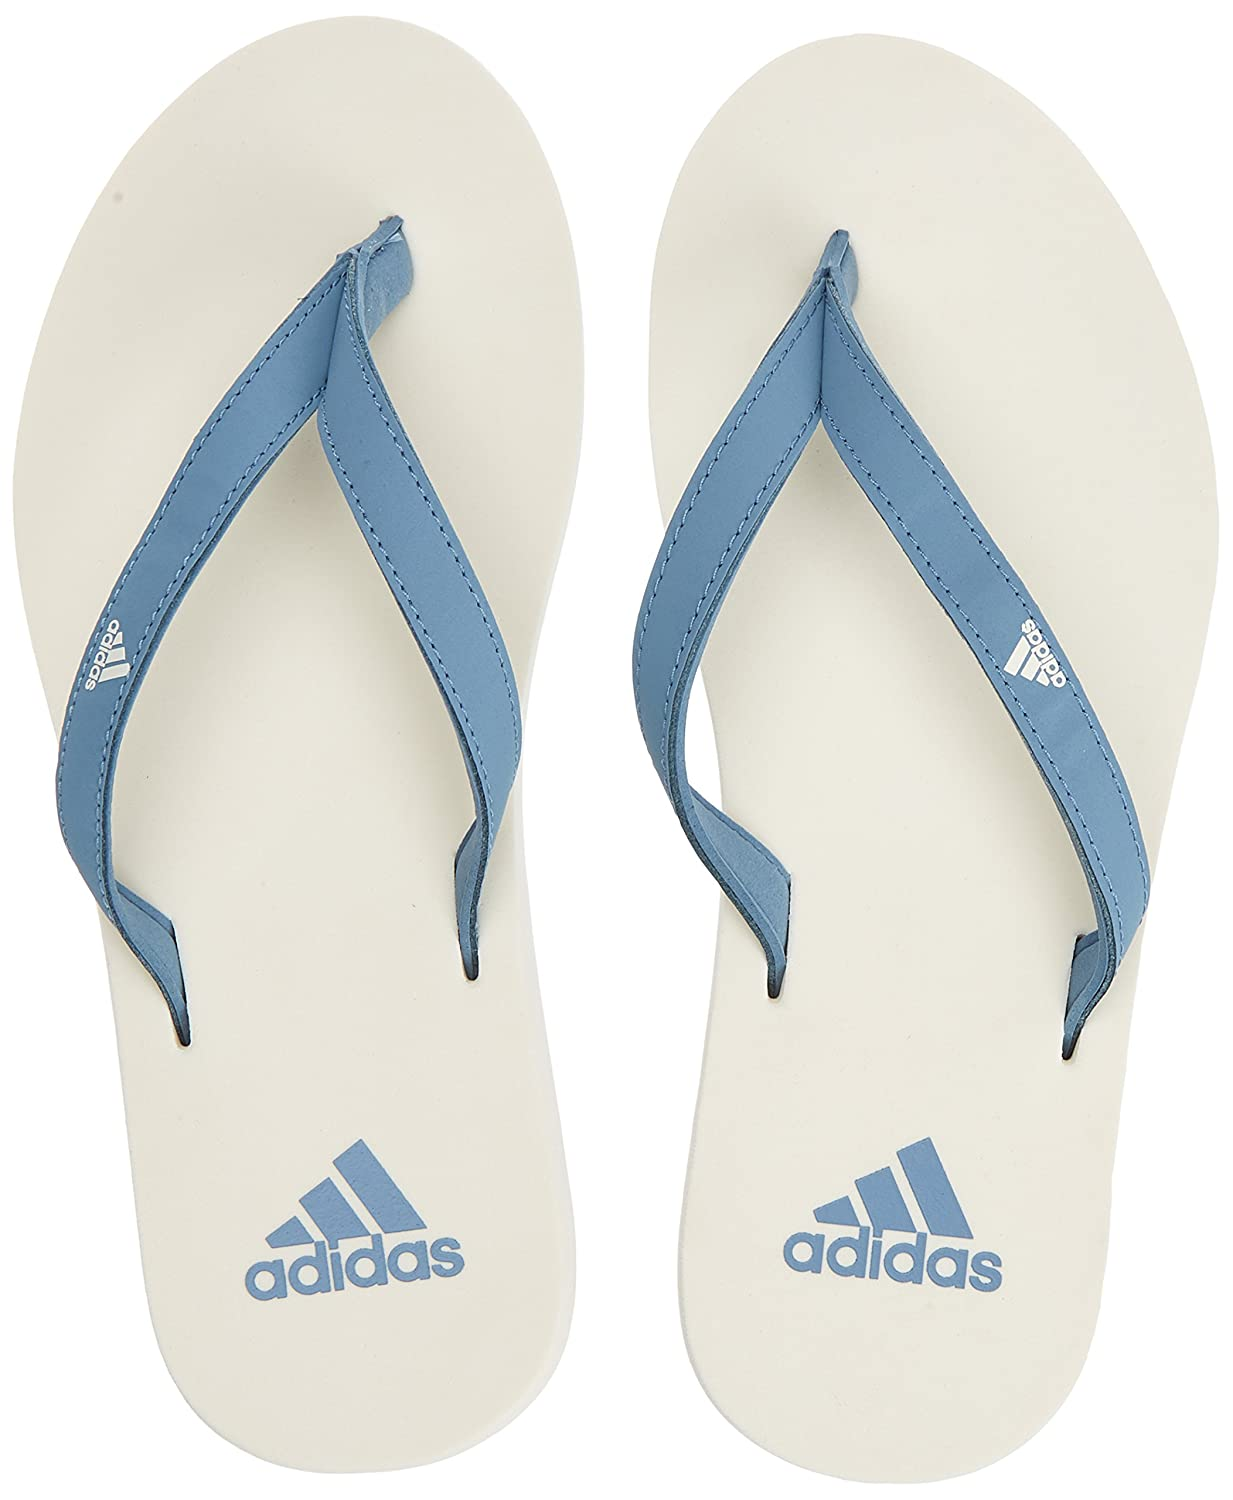 quality design 1a2c4 92e62 Amazon.com  adidas Women Swimming Eezay Flip-Flops Pool Beach Sandals Tong  CG3558 Sporty  Flip-Flops